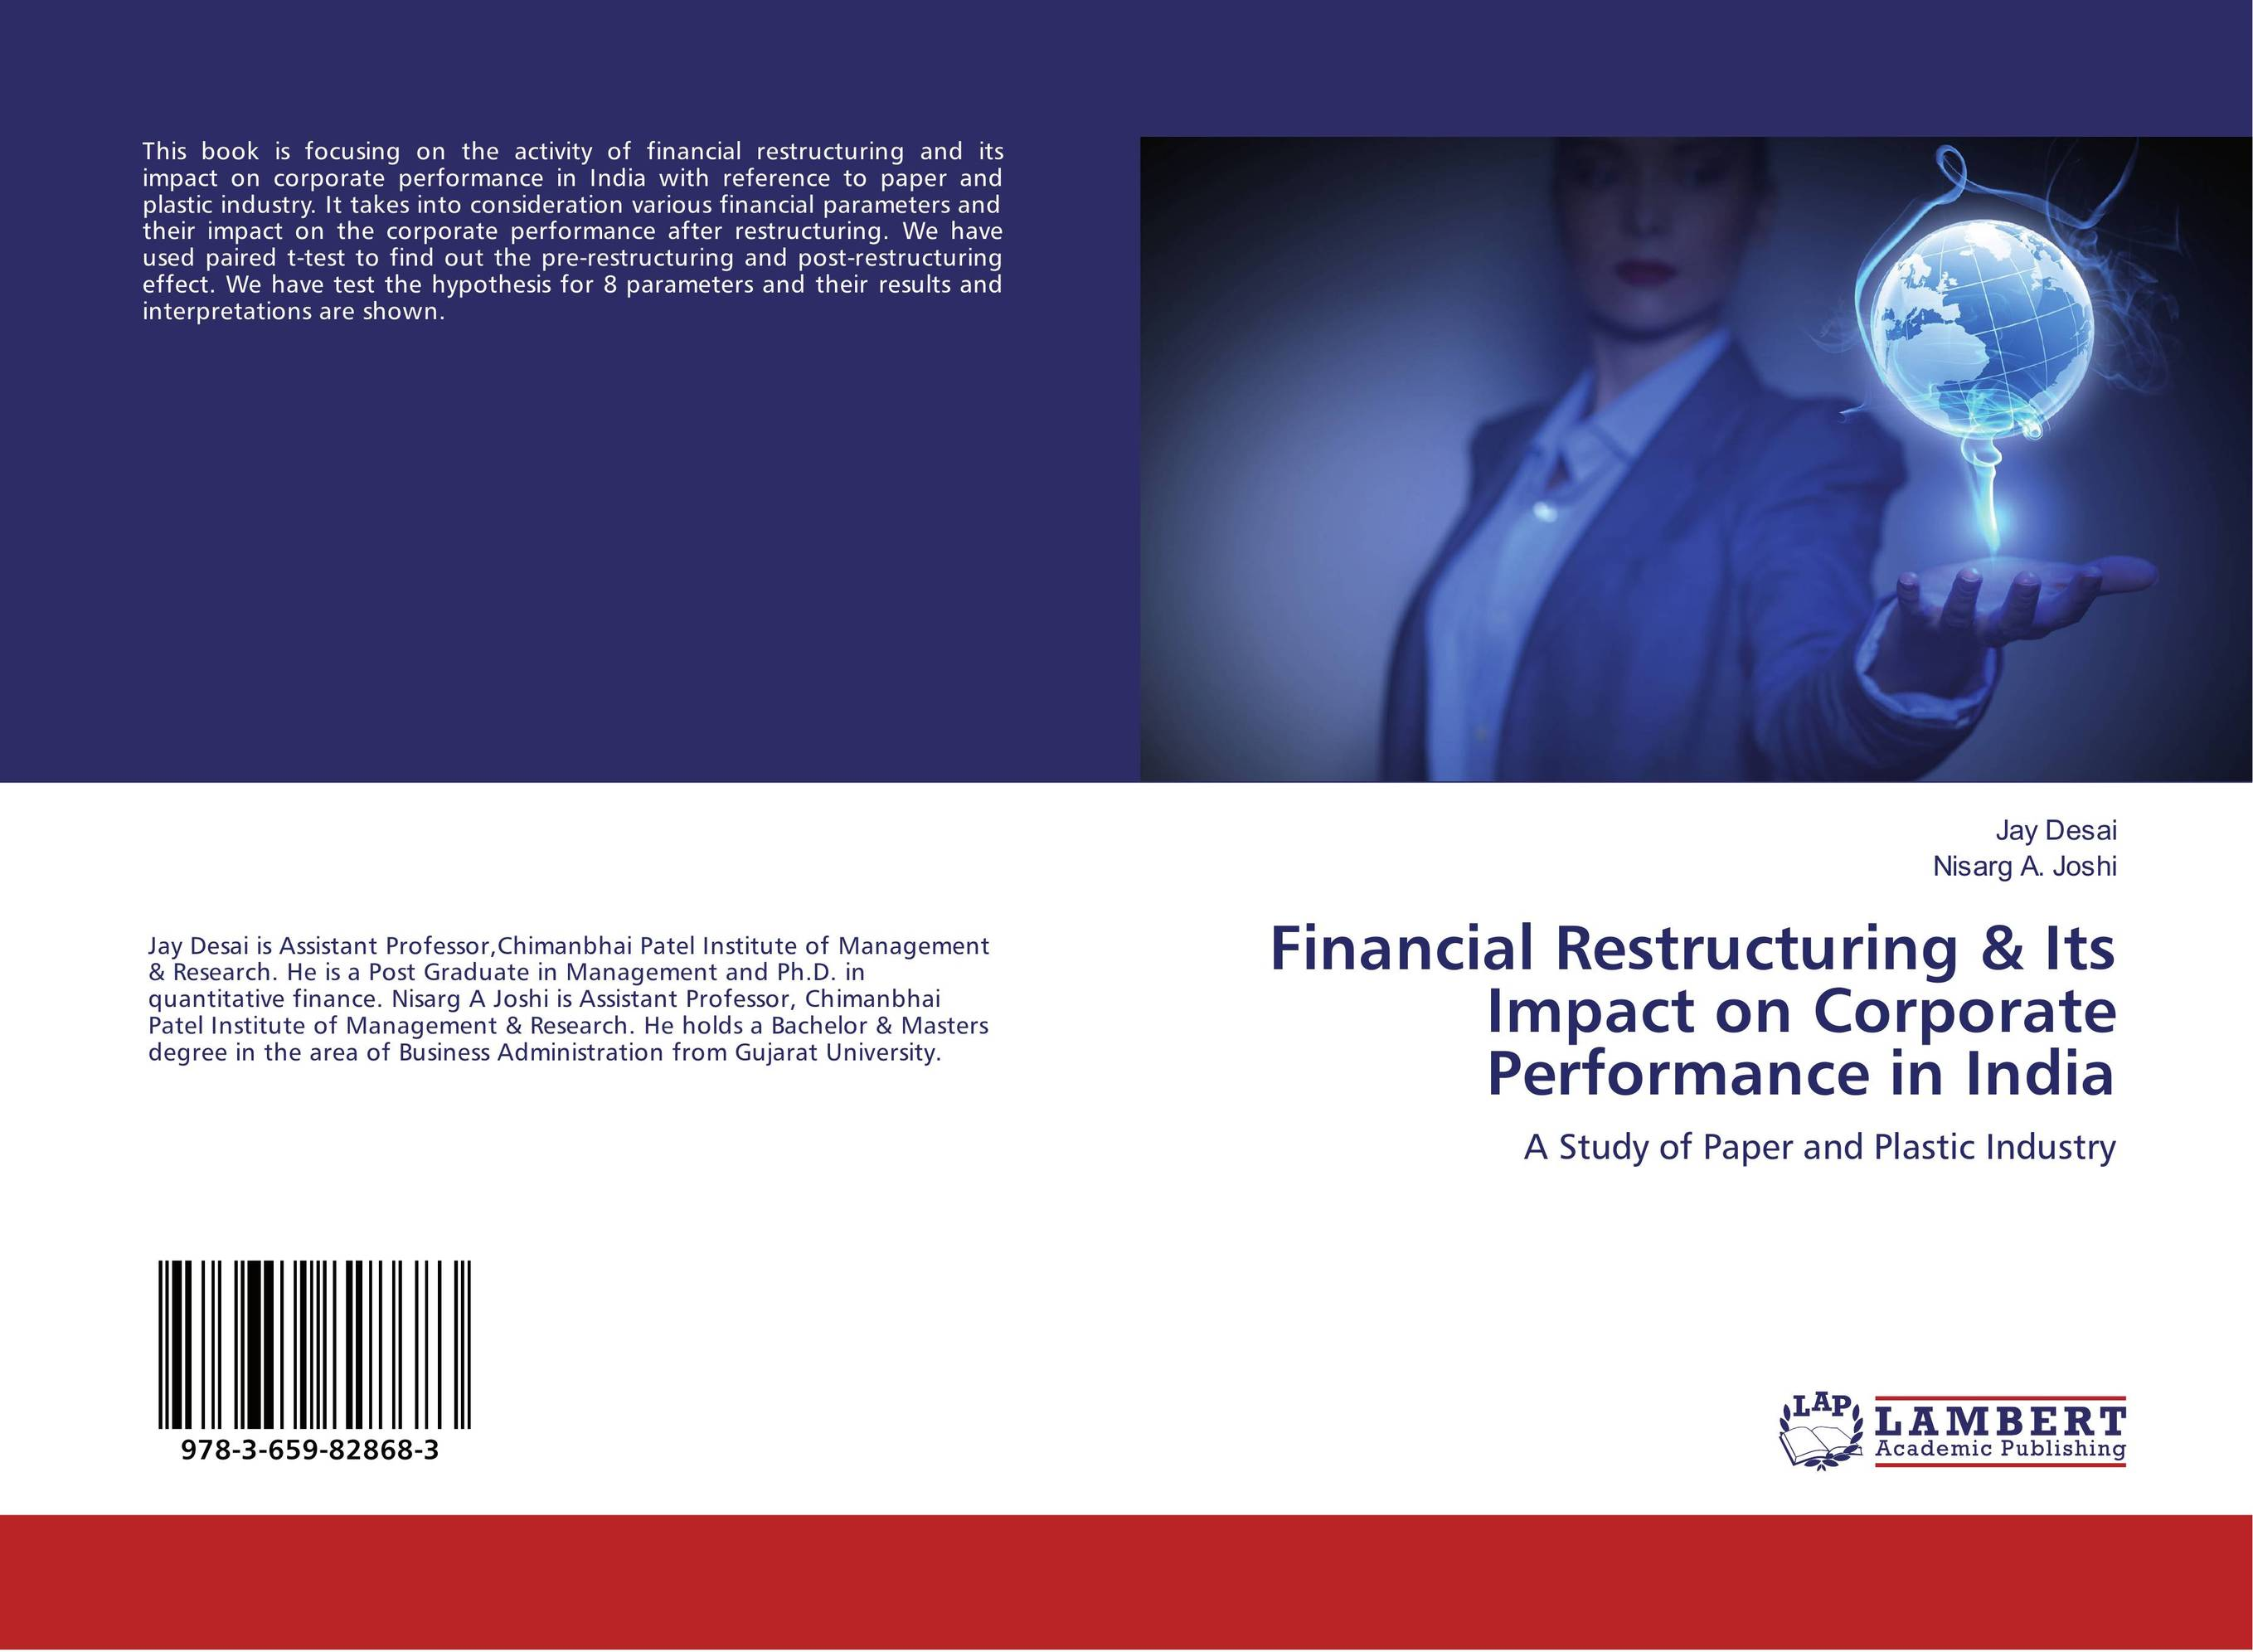 corporate debt restructuring in india The case presents the issues involved in the corporate debt restructuring (cdr) of a financially stressed company the rationale and process for cdr and also the contributory factors for the success or failure of the cdr exercise are highlighted a consortium of banks is convening a meeting to.